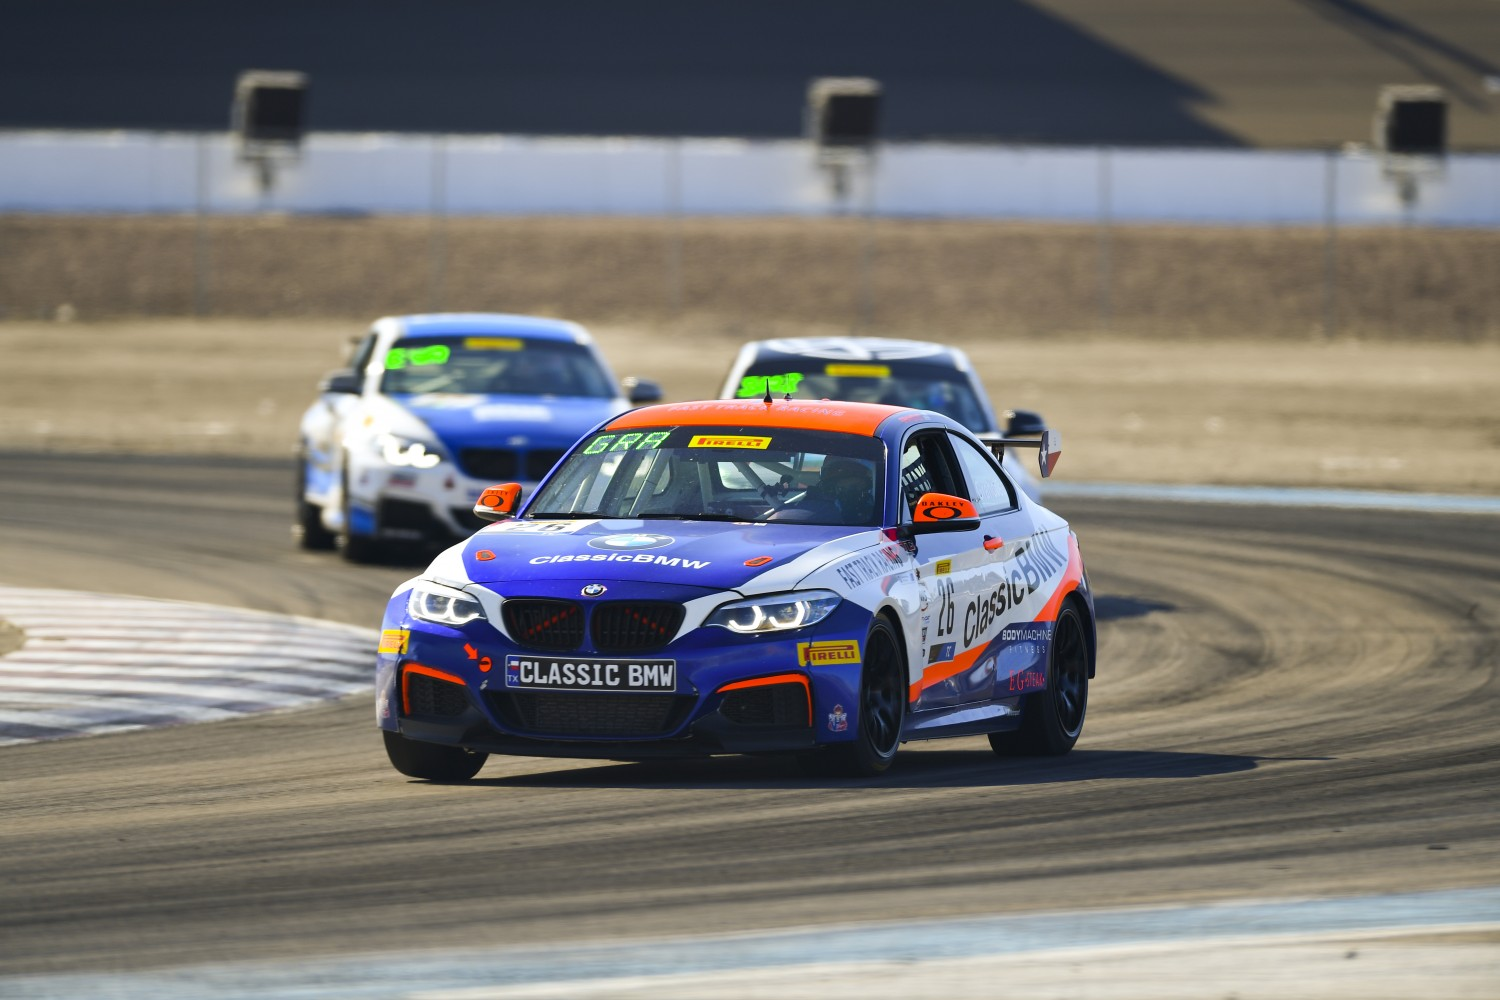 #26 BMW M240iR Cup of Toby Grahovec  with Classic BMW  2019 Blancpain GT World Challenge America - Las Vegas, Las Vegas NV | Gavin Baker/SRO